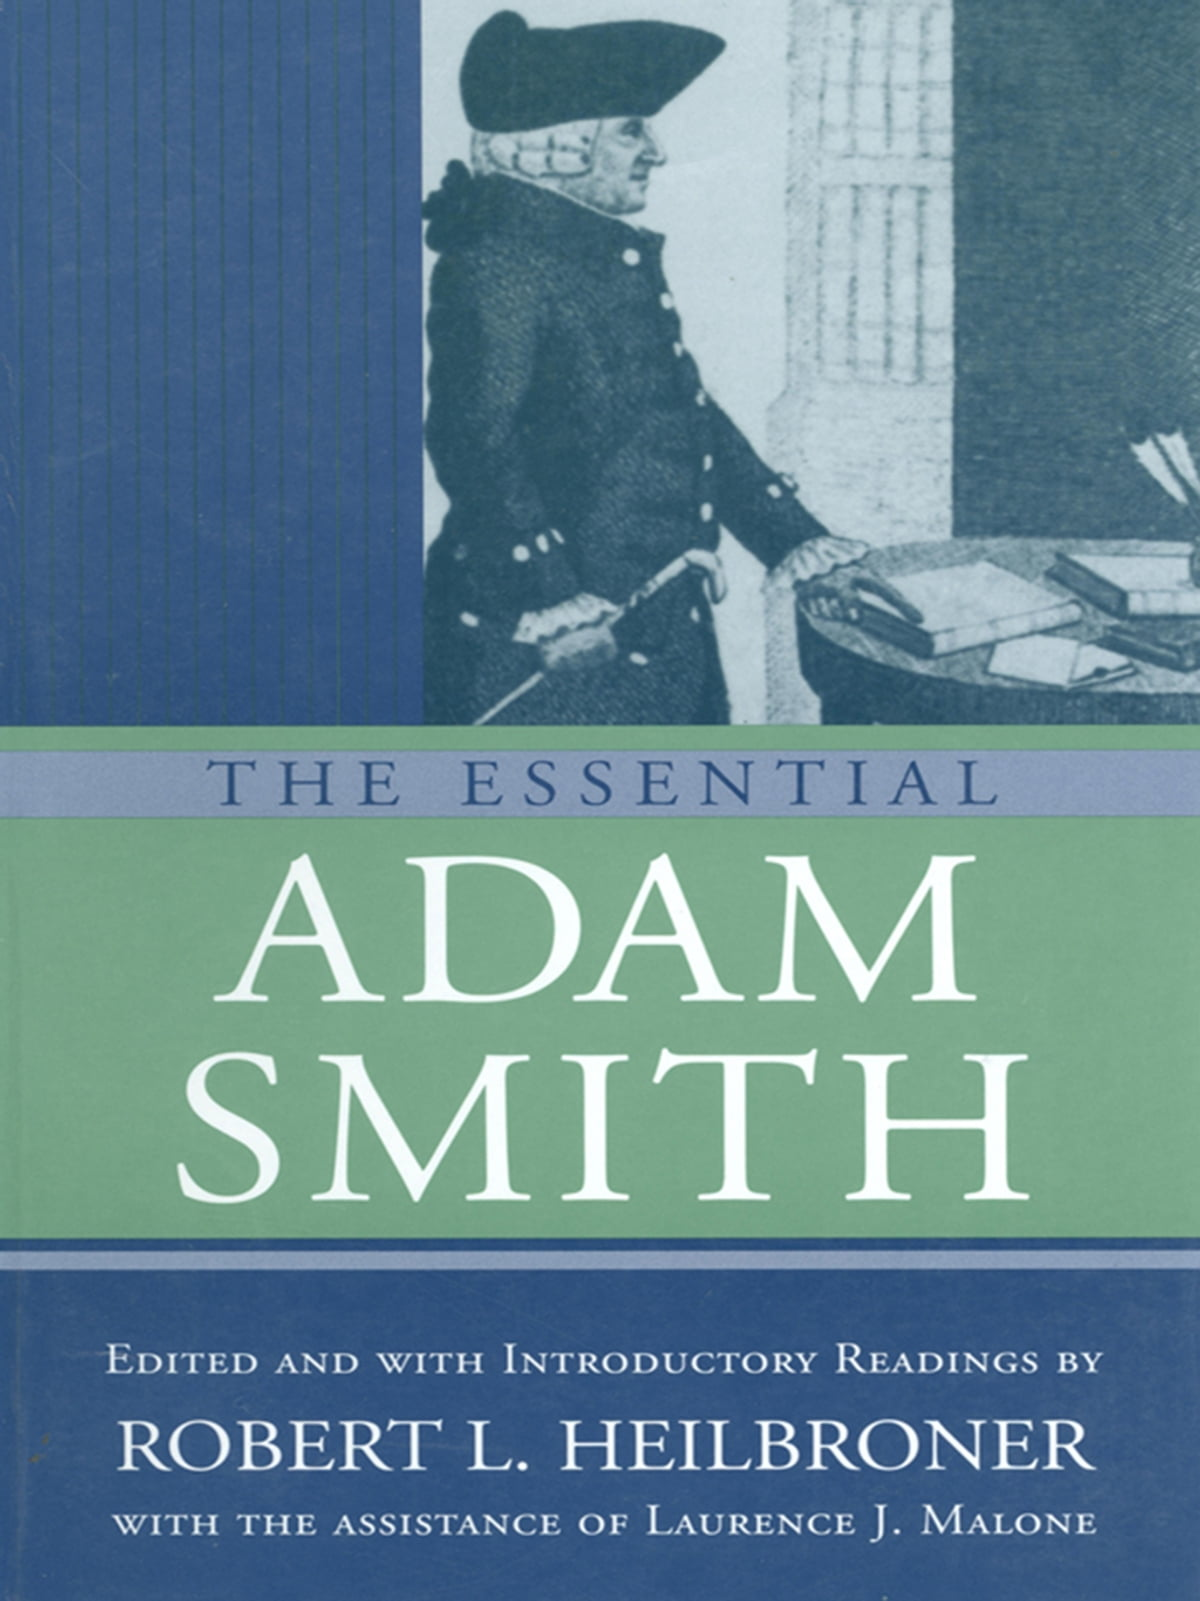 an introduction to the works of adam smith an economist Adam smith was a british philosopher whose book the wealth of nations was published in 1776 with that book he gave birth to the notion tht free markets worked to improve general welfare, and he is a scotish economist/philosopher who is credited as the father of liberal economics because of.